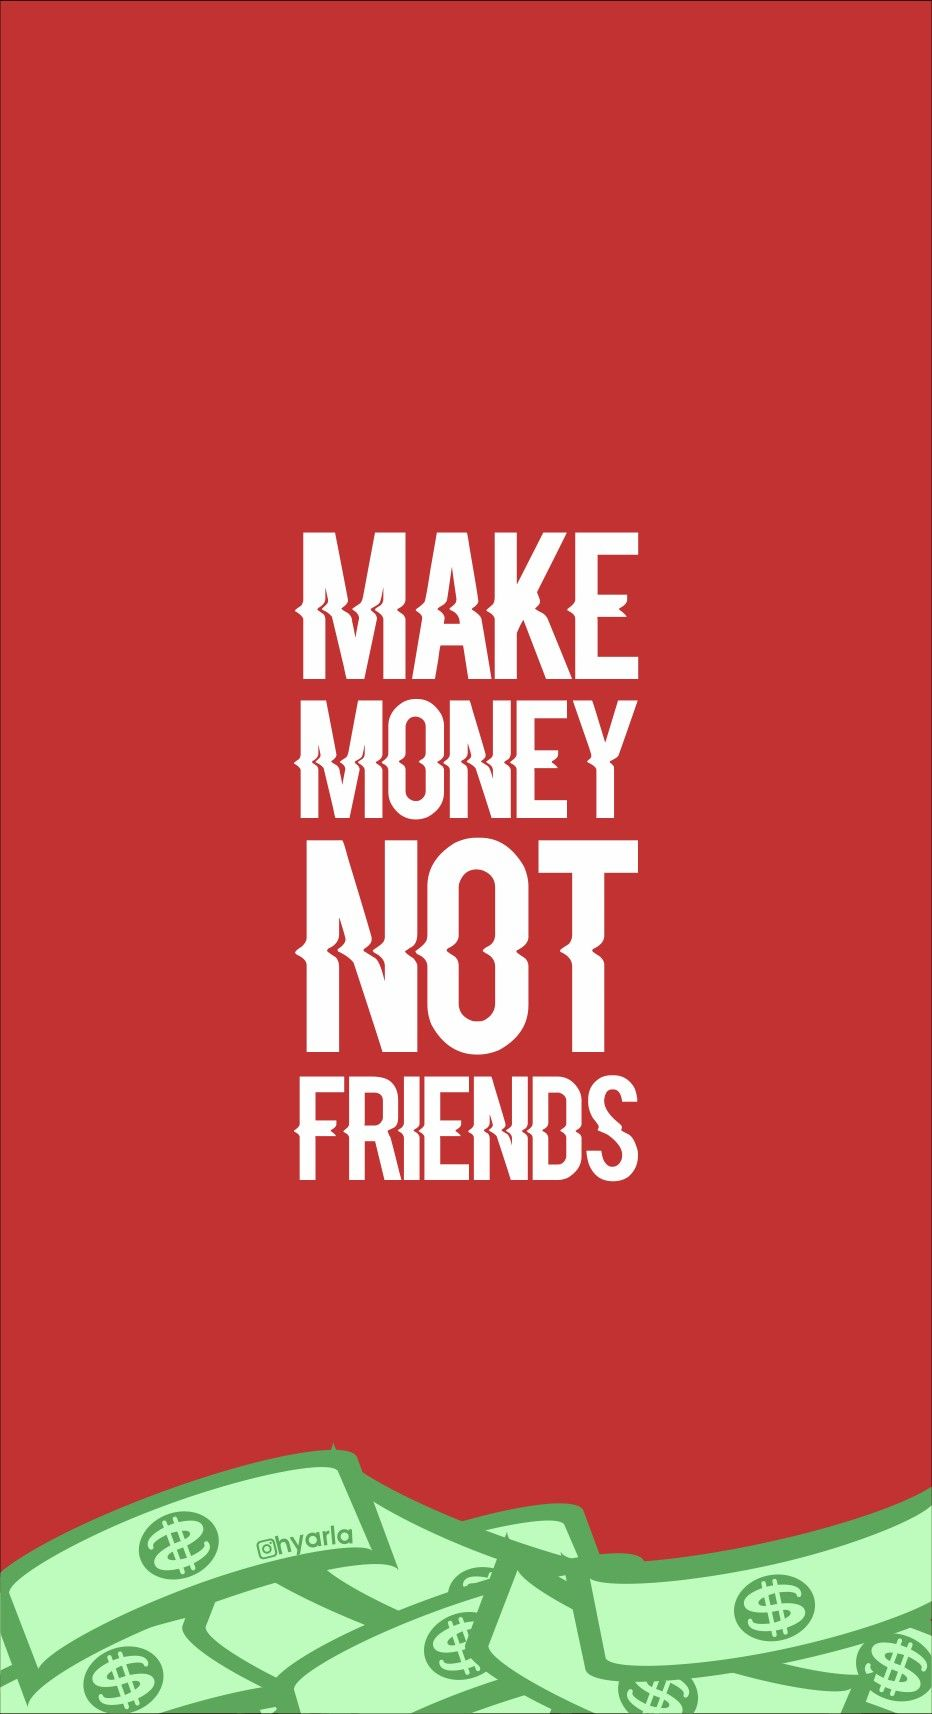 Wallpaper Make Money Not Friends Wallpaper In 2019 Money